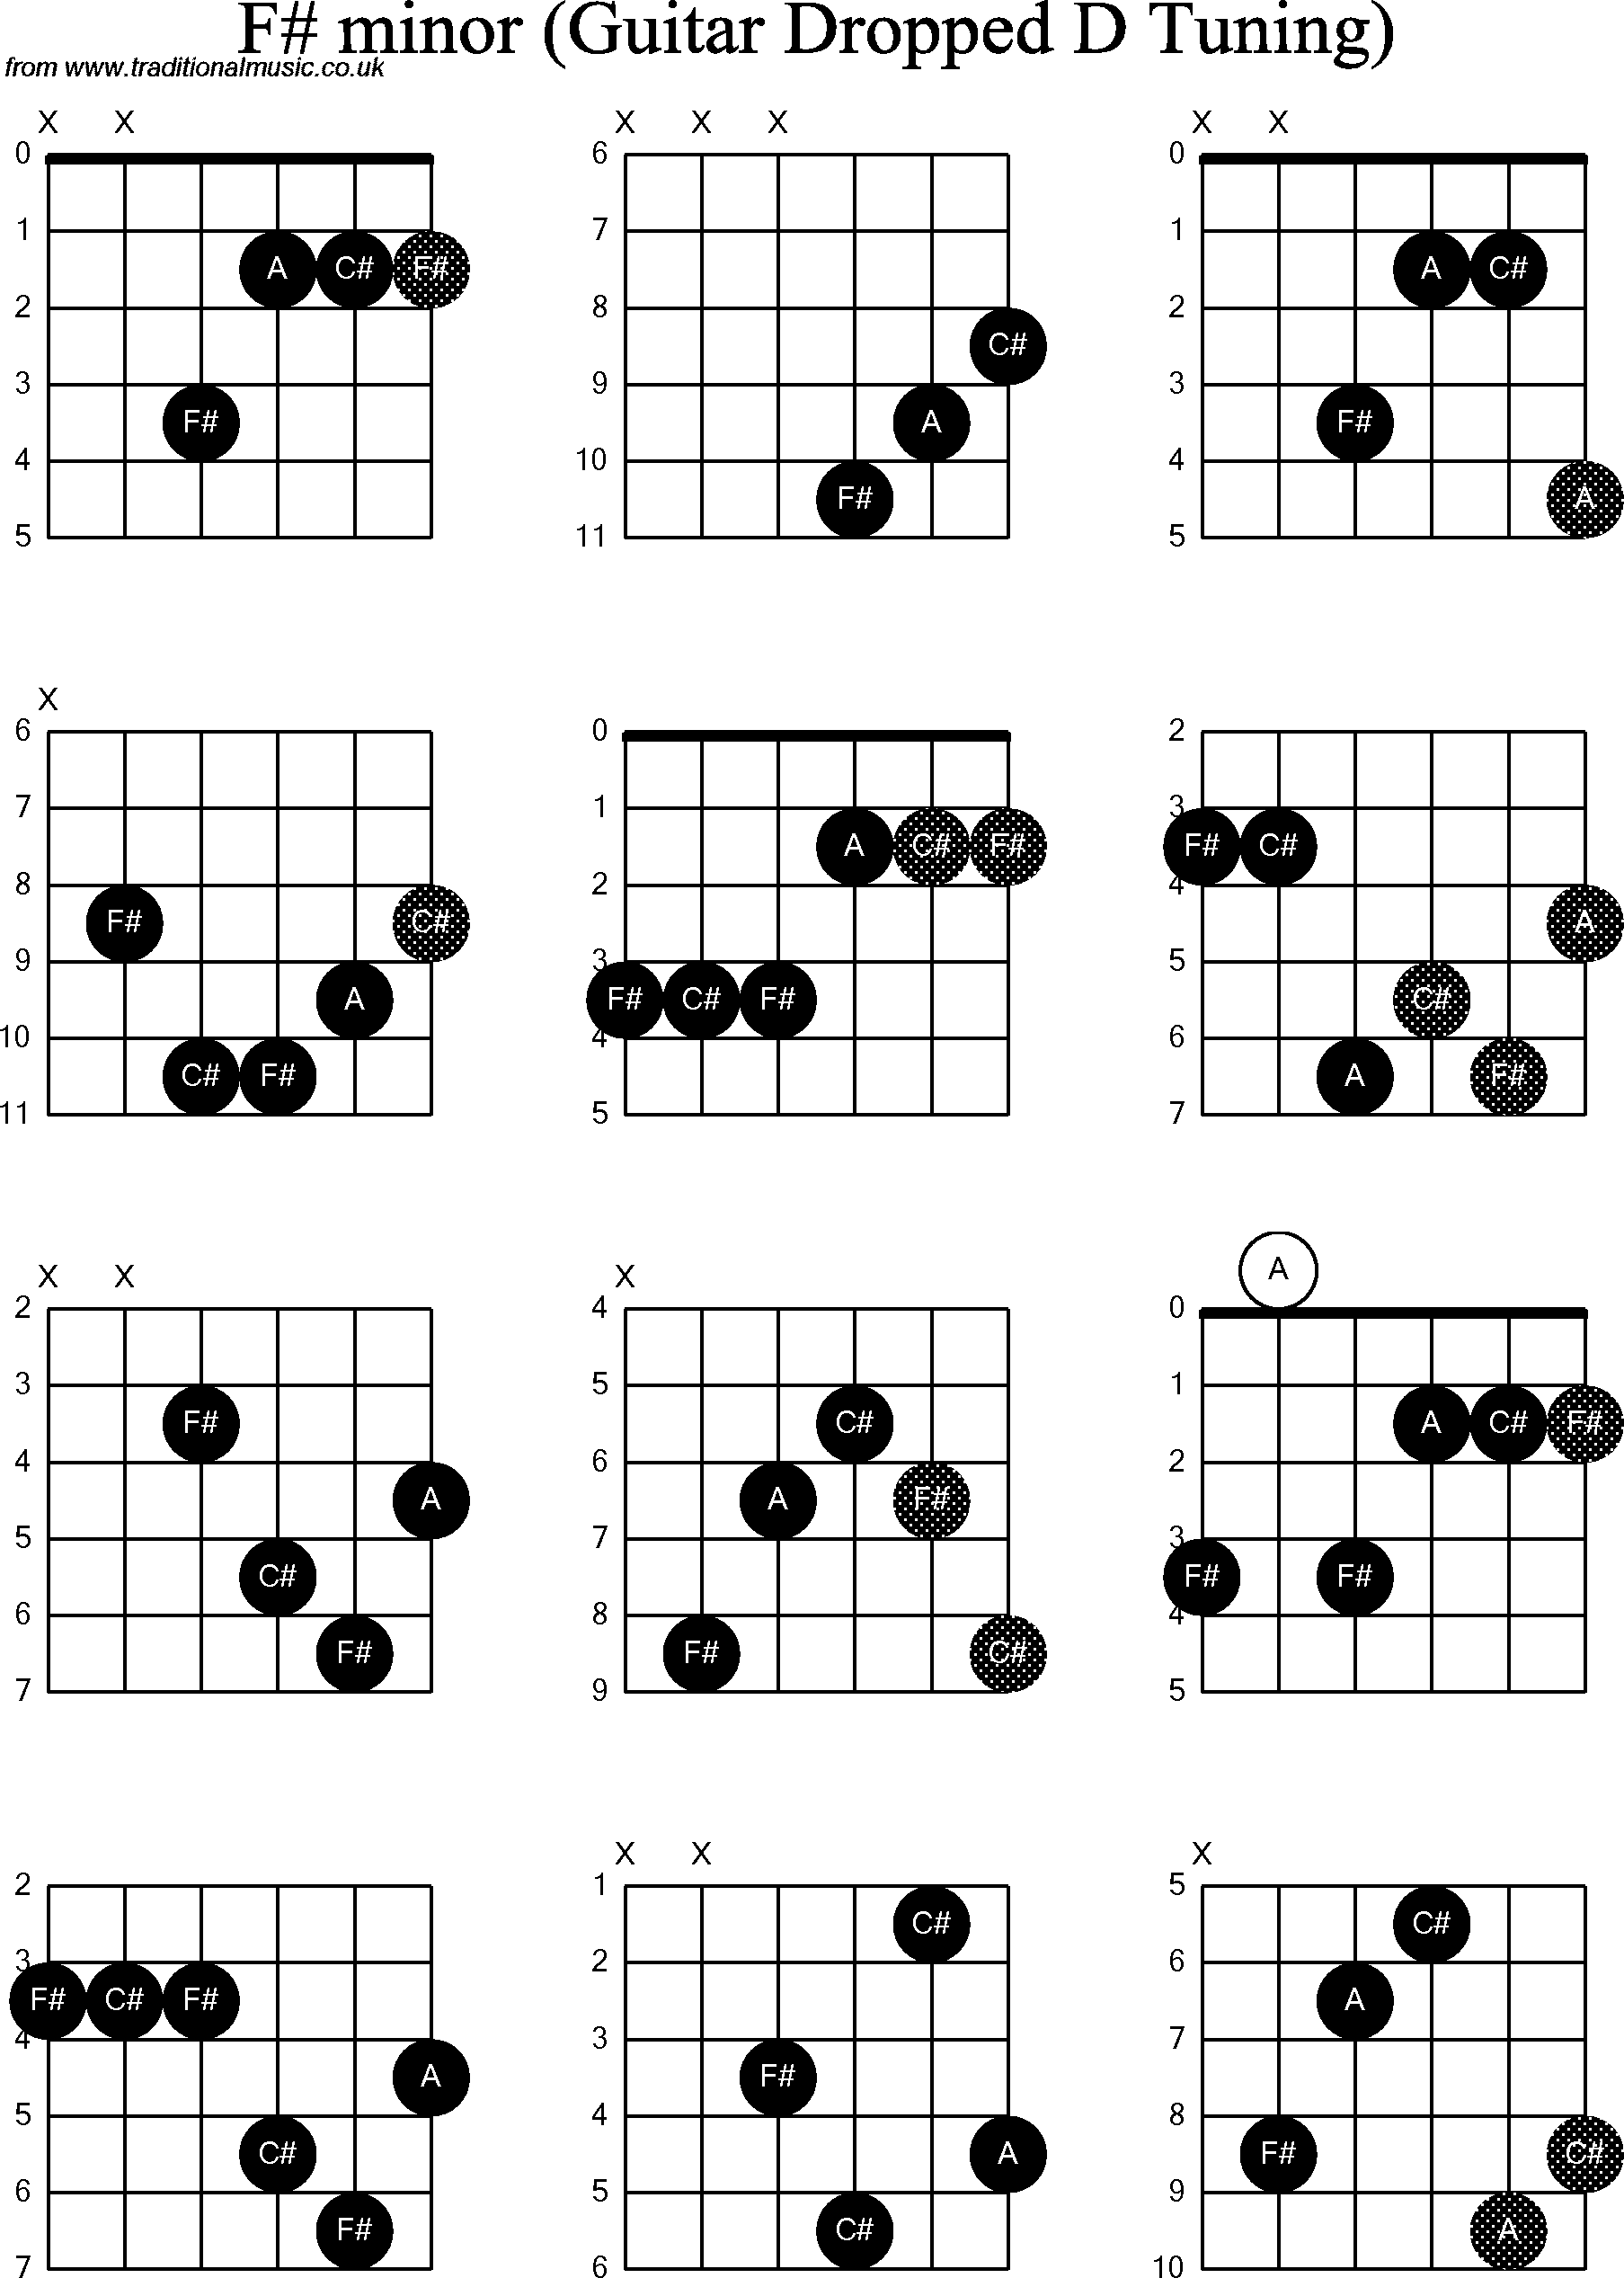 Chord diagrams for dropped d guitardadgbe f sharp minor chord diagrams for dropped d guitardadgbe f sharp minor hexwebz Gallery